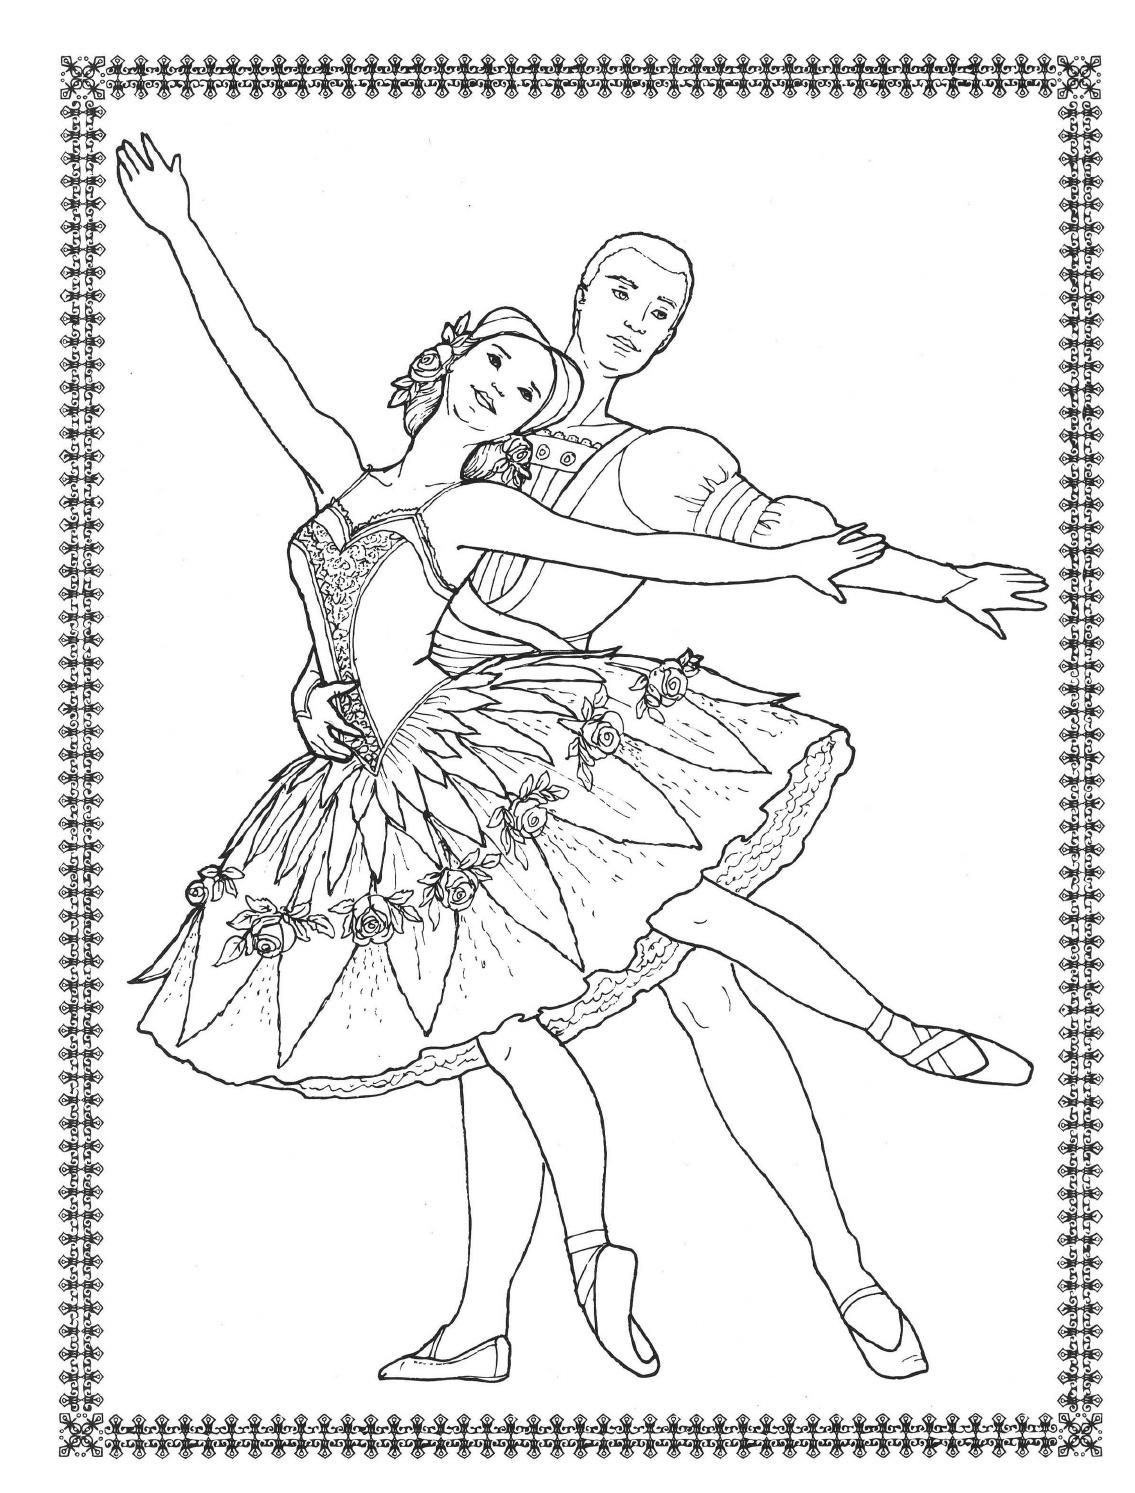 dancers coloring book costumes for coloring book costumes